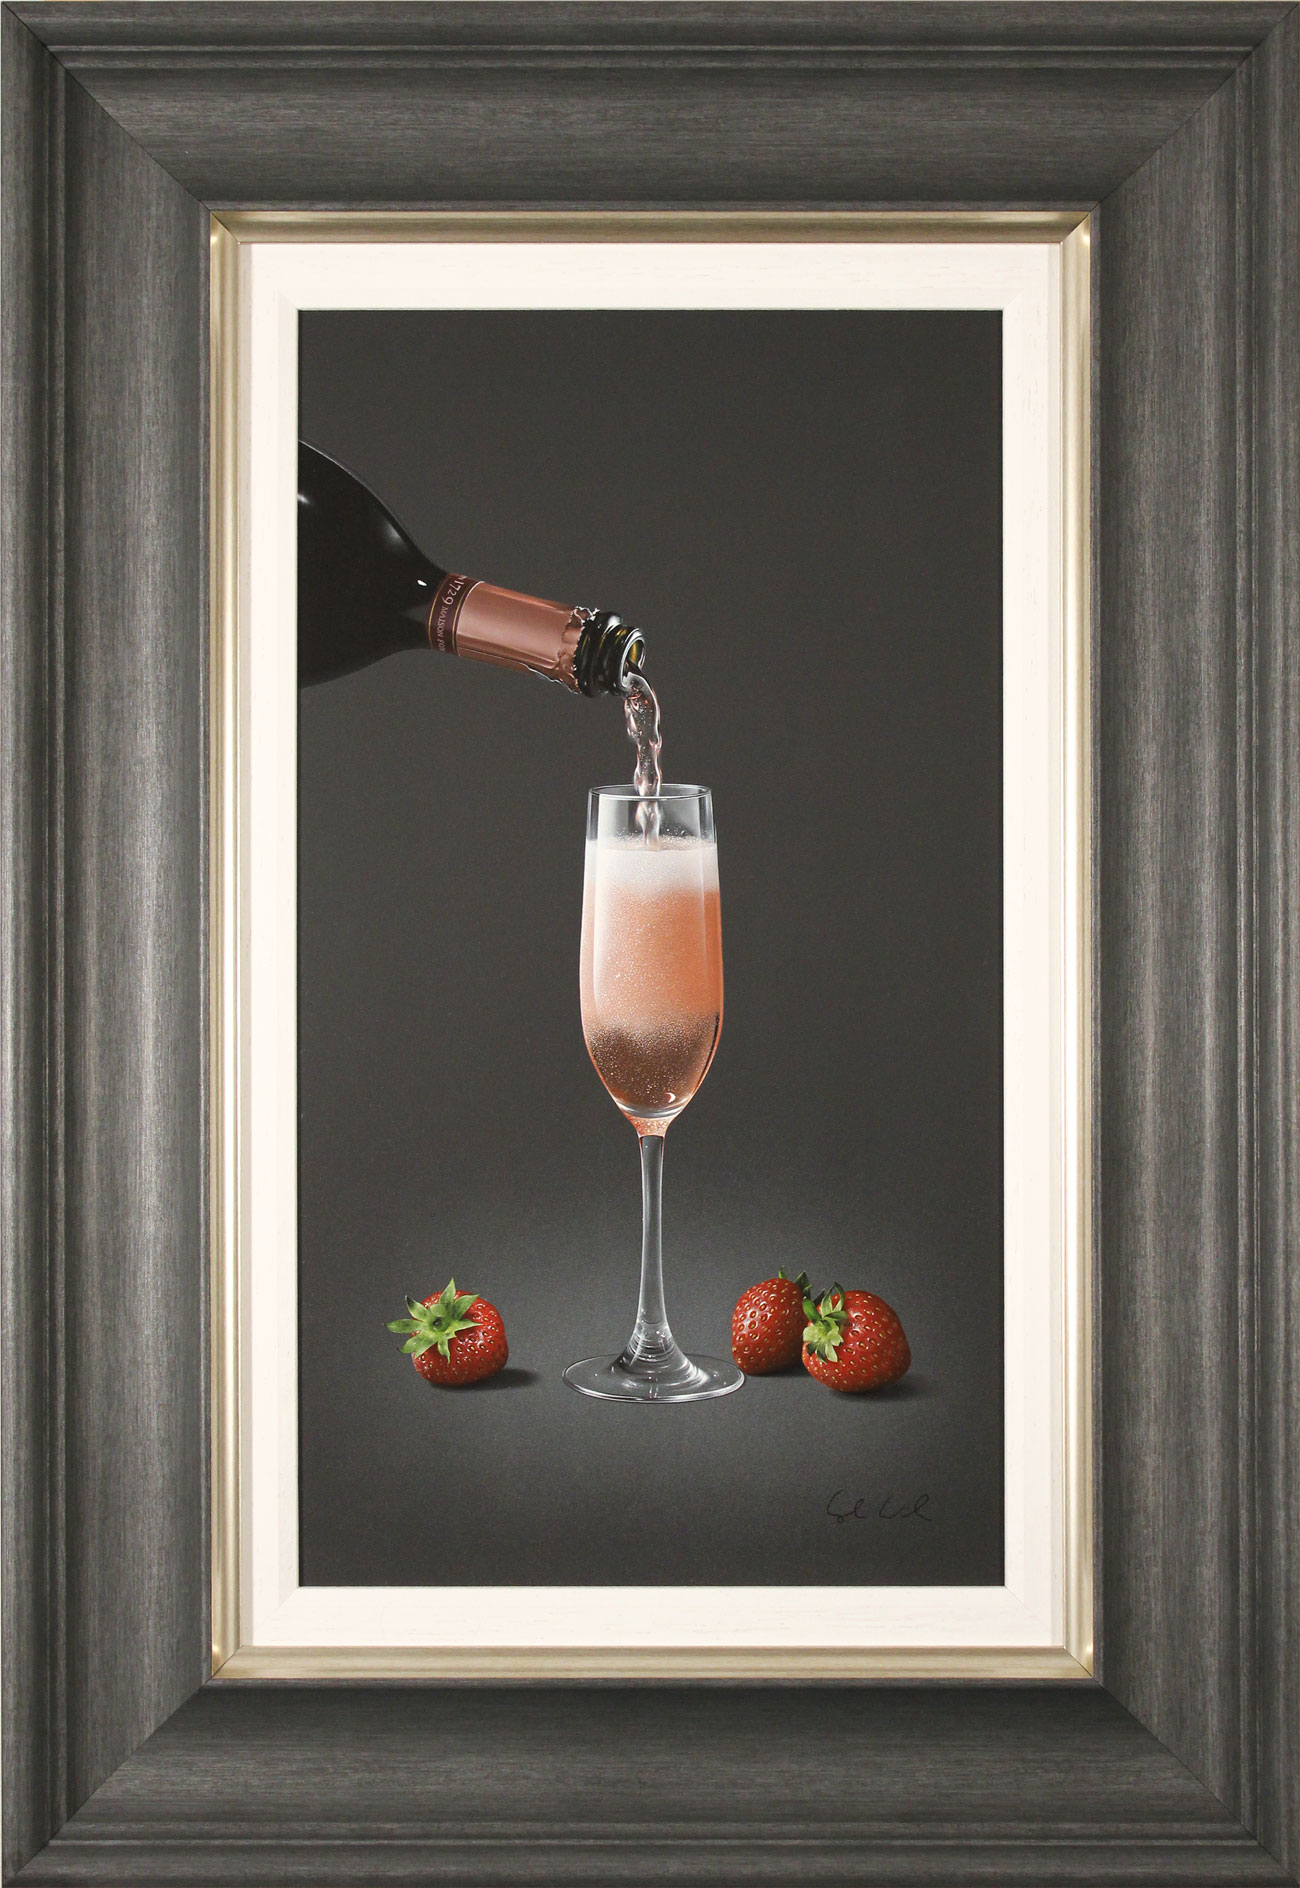 Colin Wilson, Original acrylic painting on board, Sparkling Rosé and Strawberries Click to enlarge